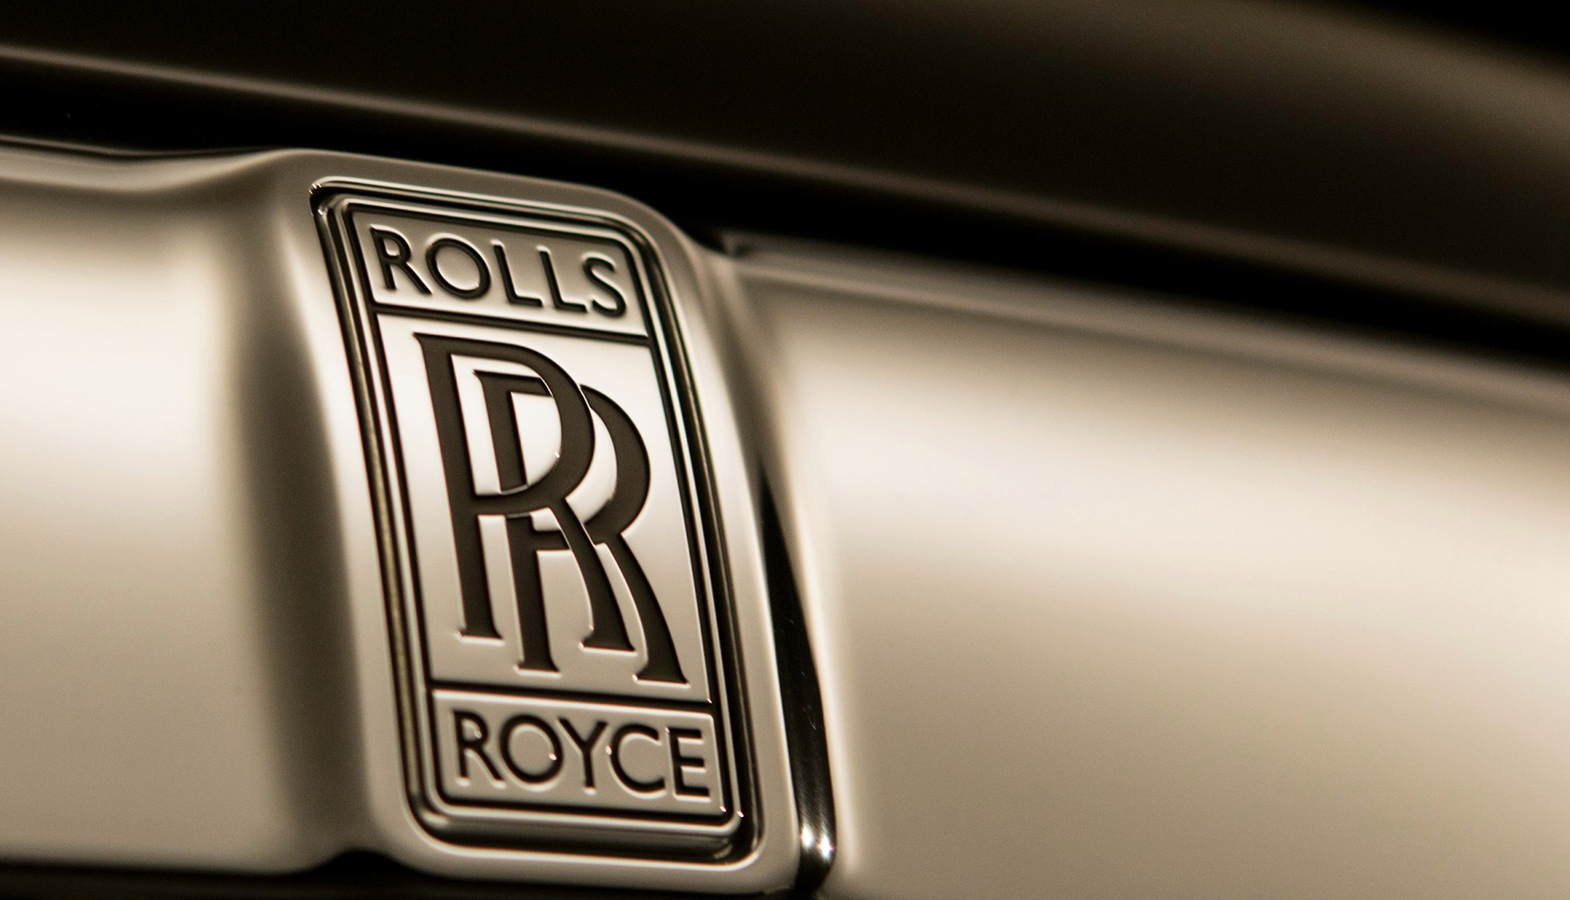 S&P Downgraded Rolls-Royce PLC To 'BB-' And Placed On CreditWatch Negative